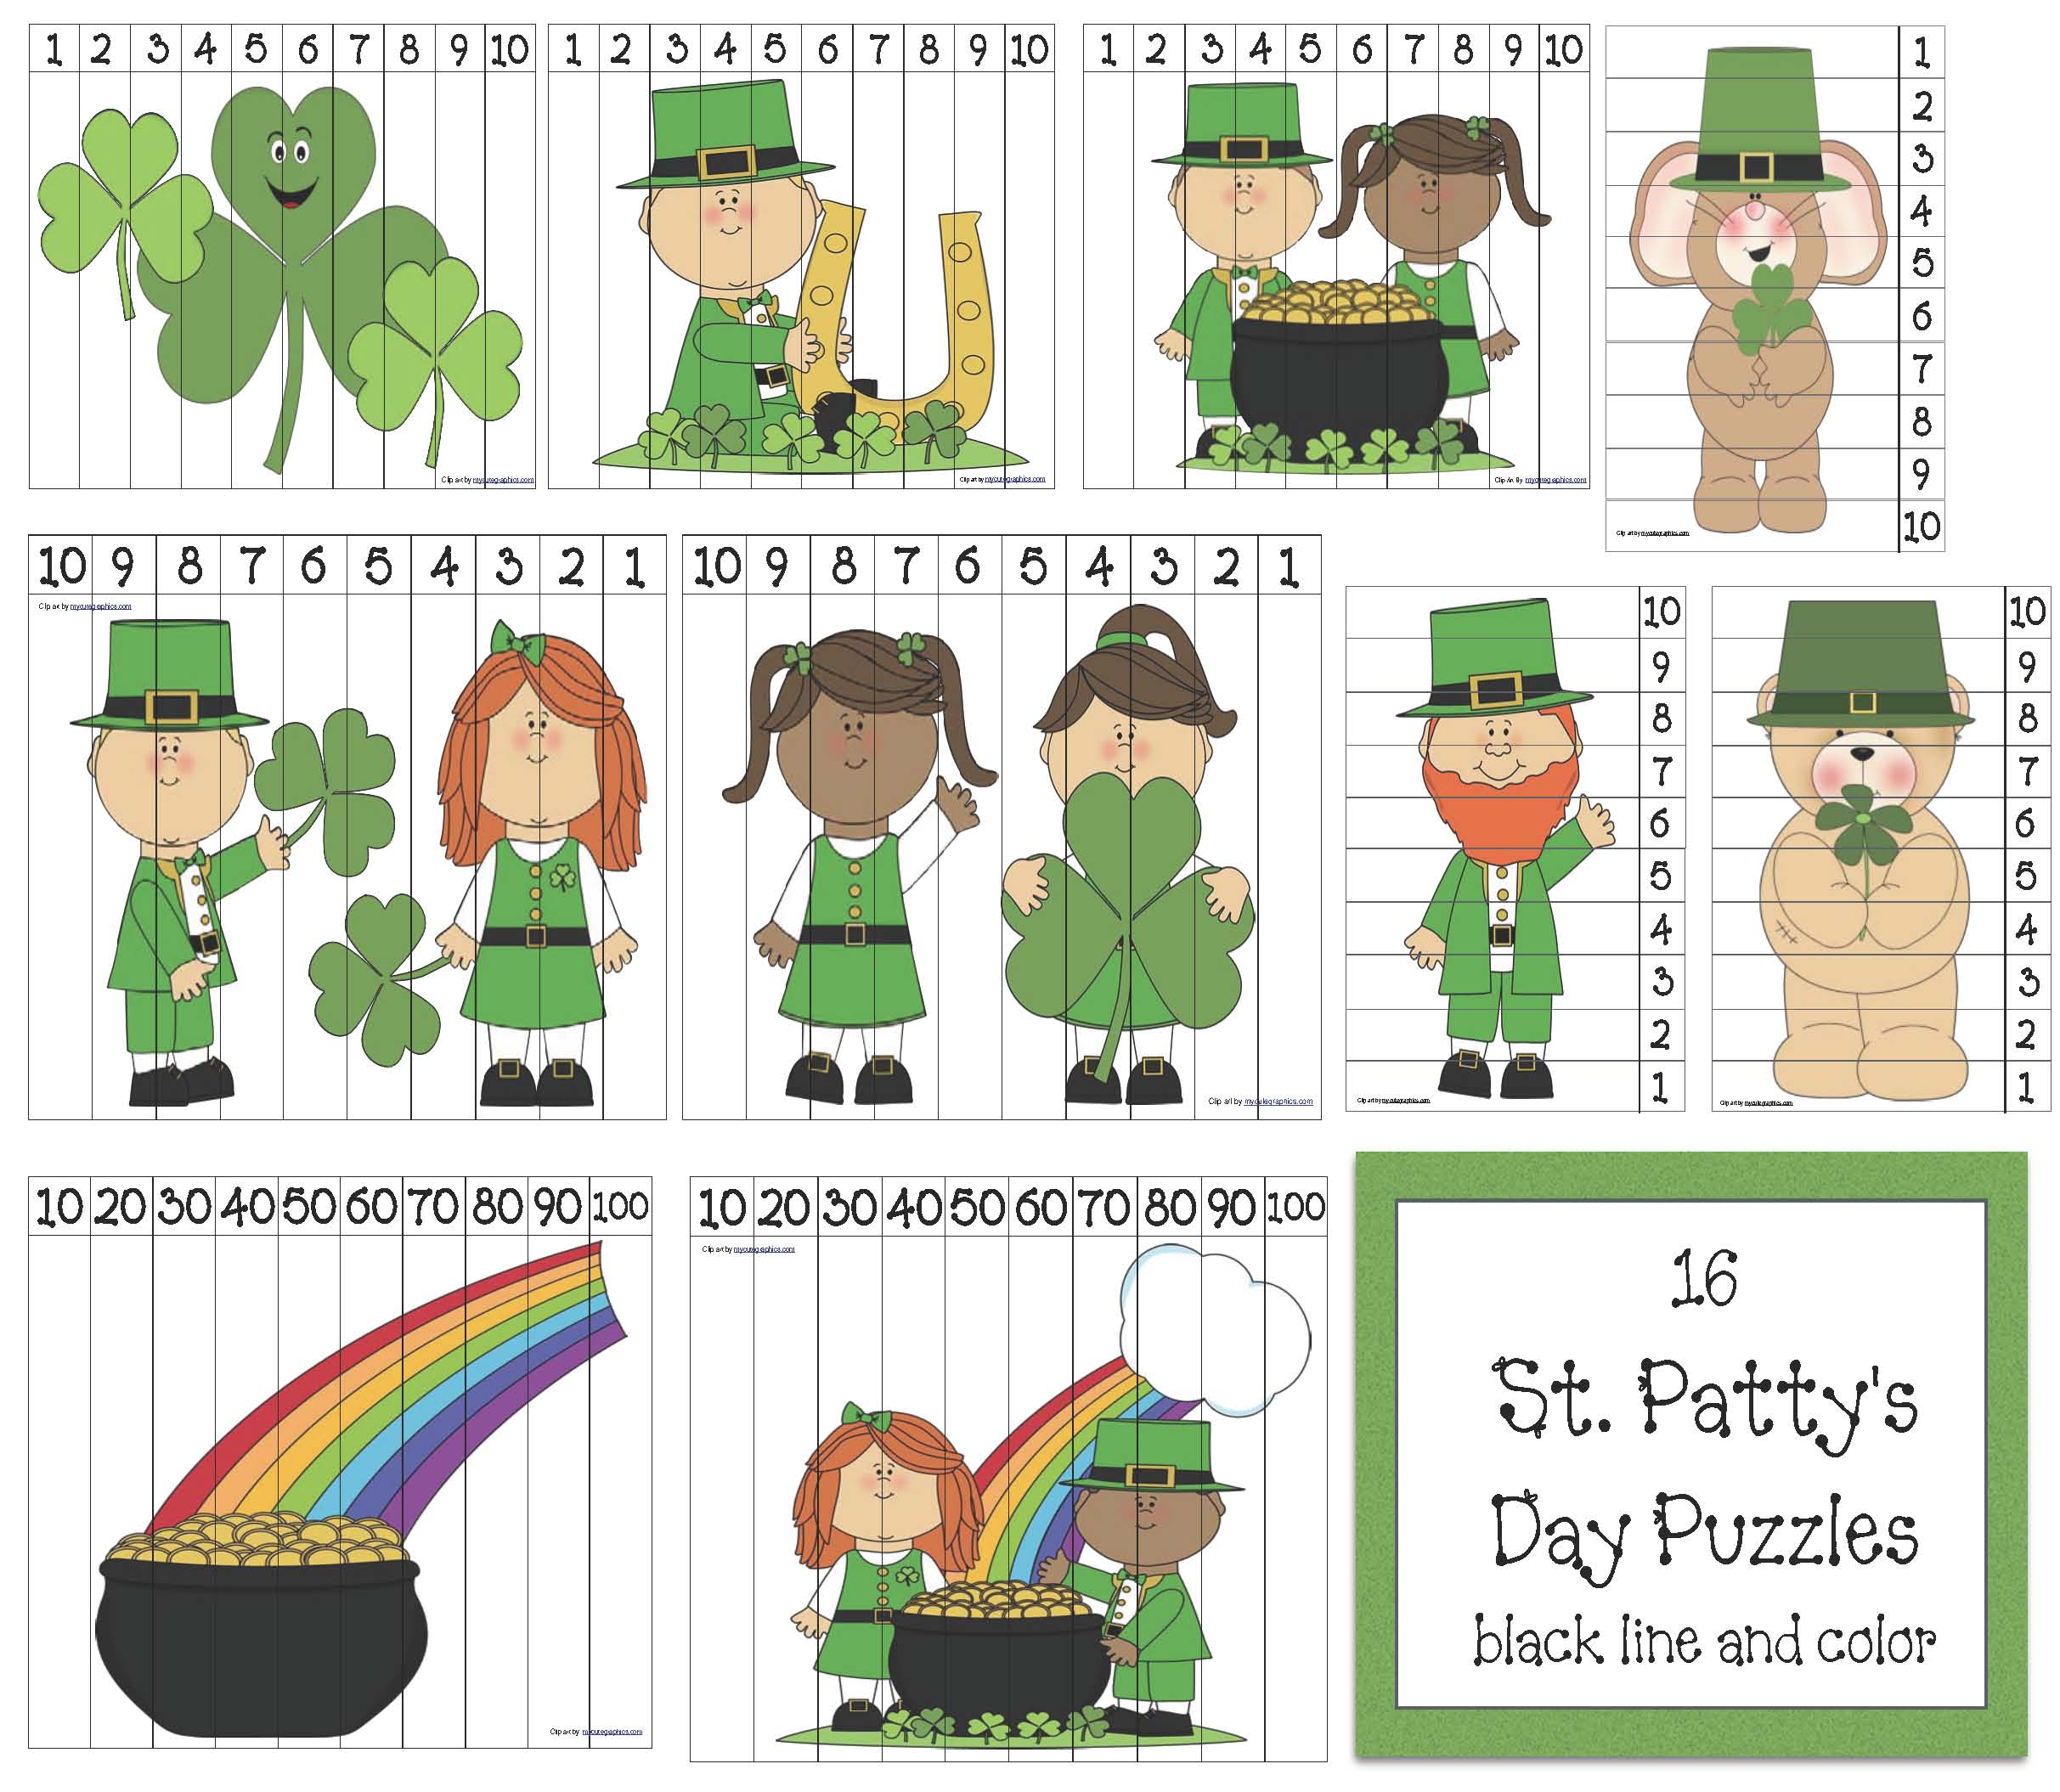 St. Patricks day activities, st pattys day activities, st pats day activities, st patricks day word search, st patricks day word find, st patricks day games, shamrock activities, shamrock centers, shamrock 10 frames, st patricks day puzzles, daily 5 for march, vocabulary building activities, how many words can you make out of leprechaun, how many words can you make out of shamrock, skip counting activities, counting backwards activities, skip counting by 10's, common core st patricks day,